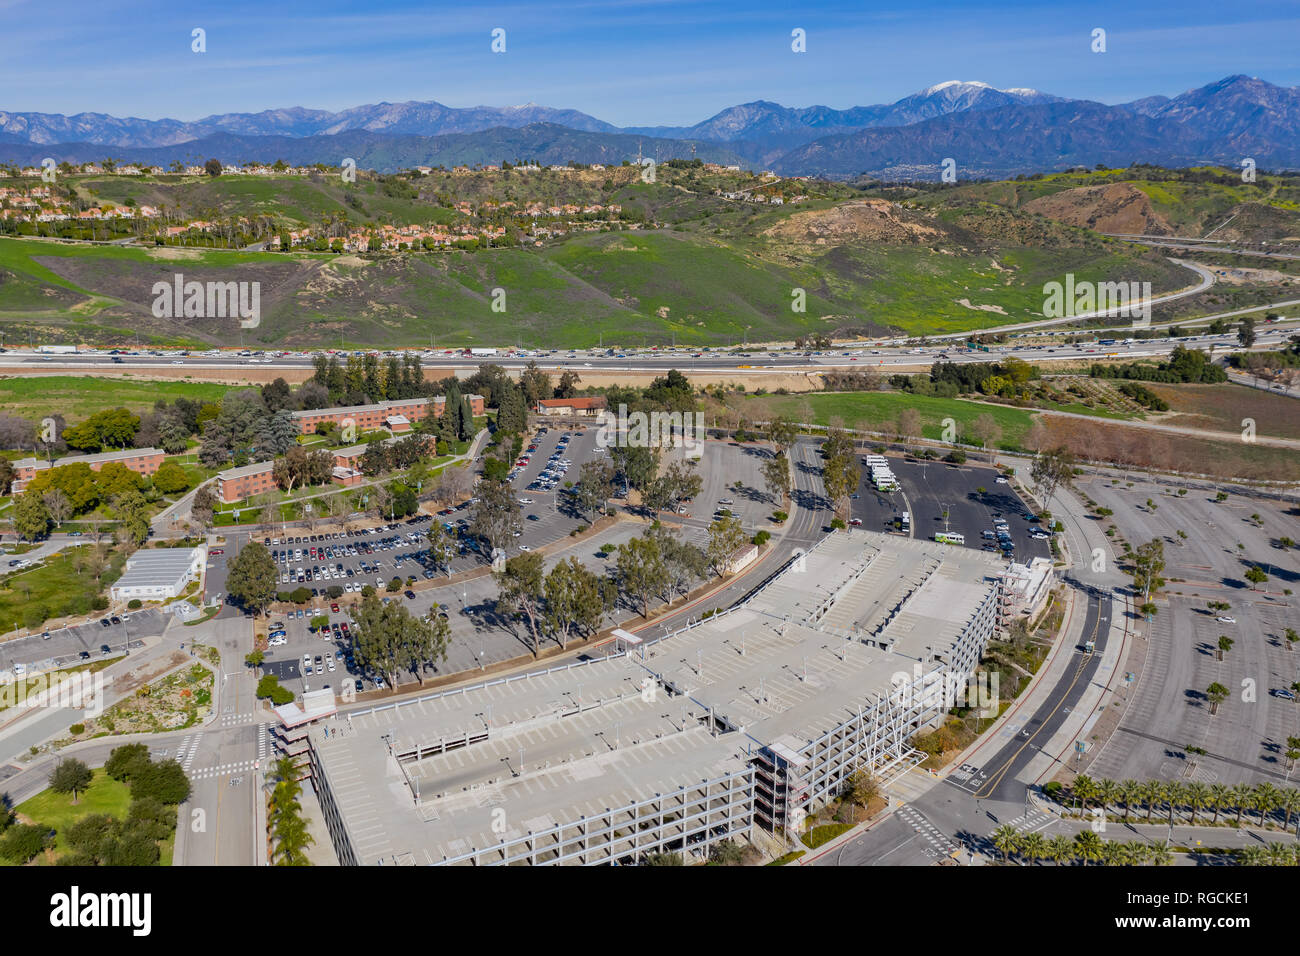 Aerial view of Magnolia Ln Parking of Cal Poly Pomona at Los Angeles County, California - Stock Image